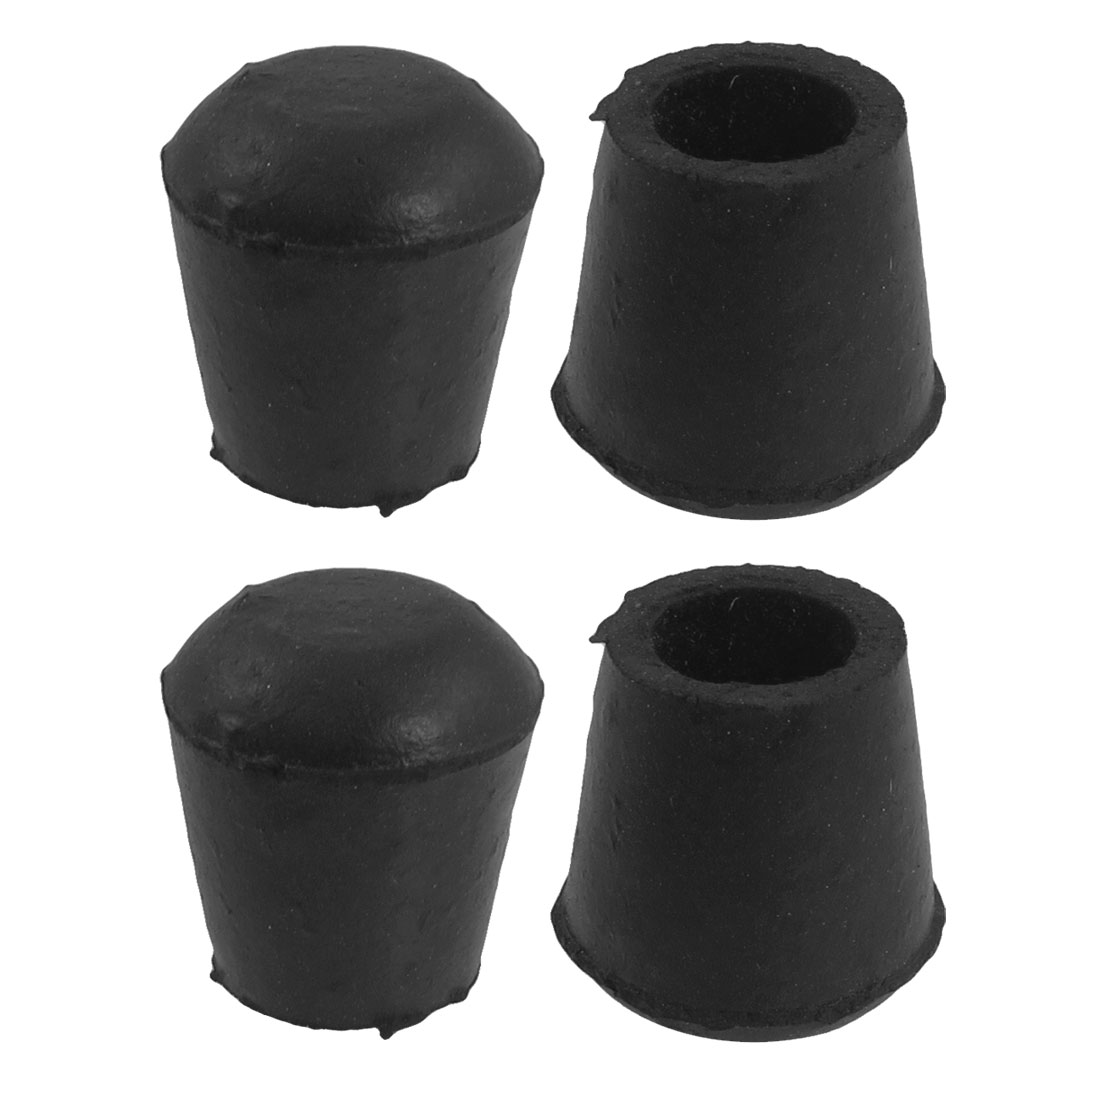 1.1cm Inner Dia Black Rubber Cone Shaped Table Chair Foot Cover Holder 4 Pcs